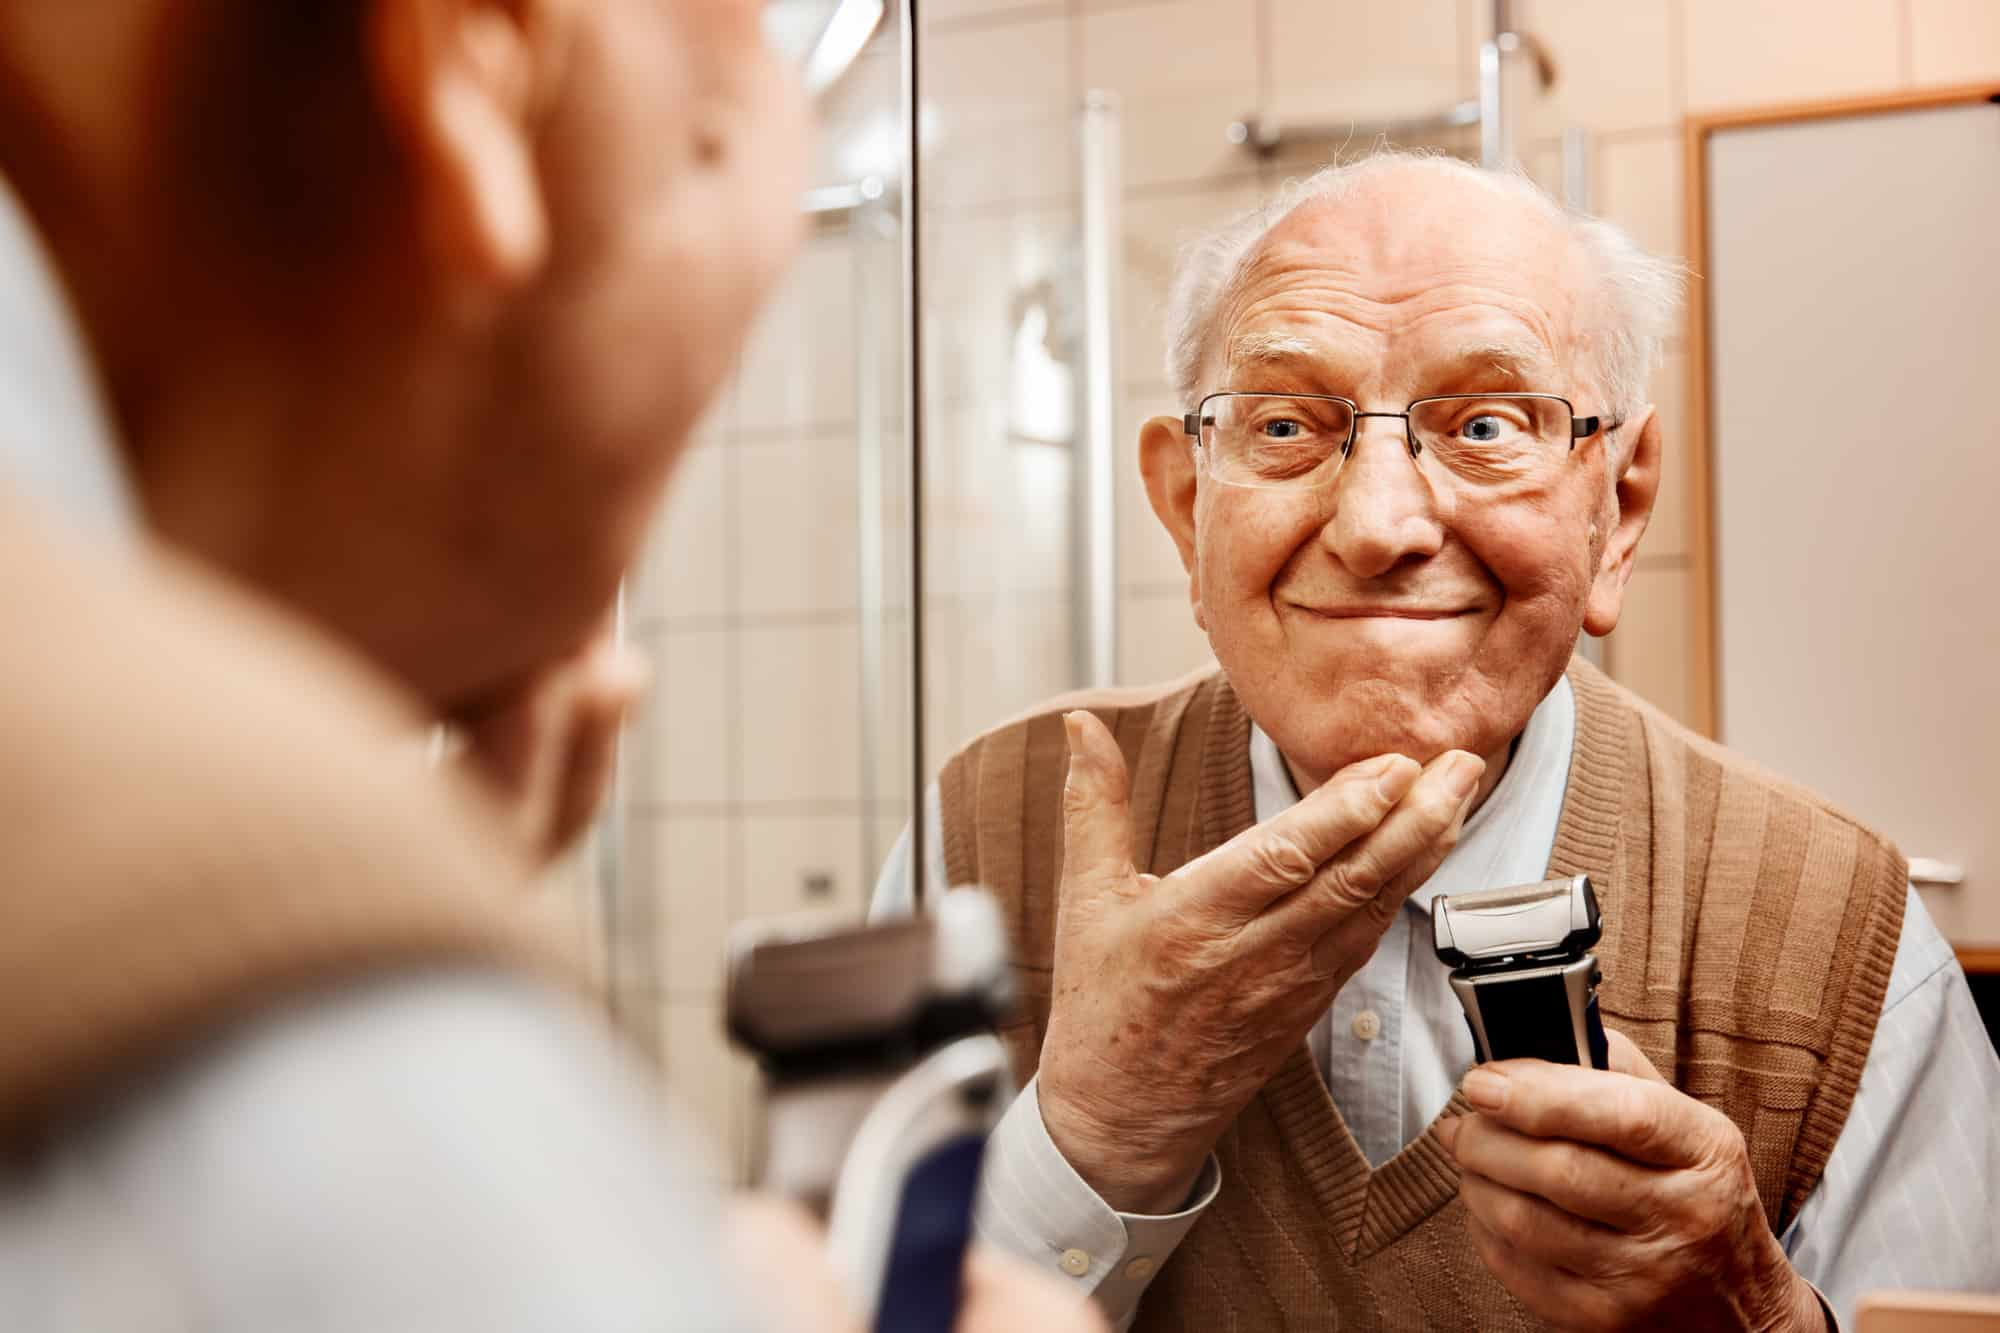 bathroom safety for seniors